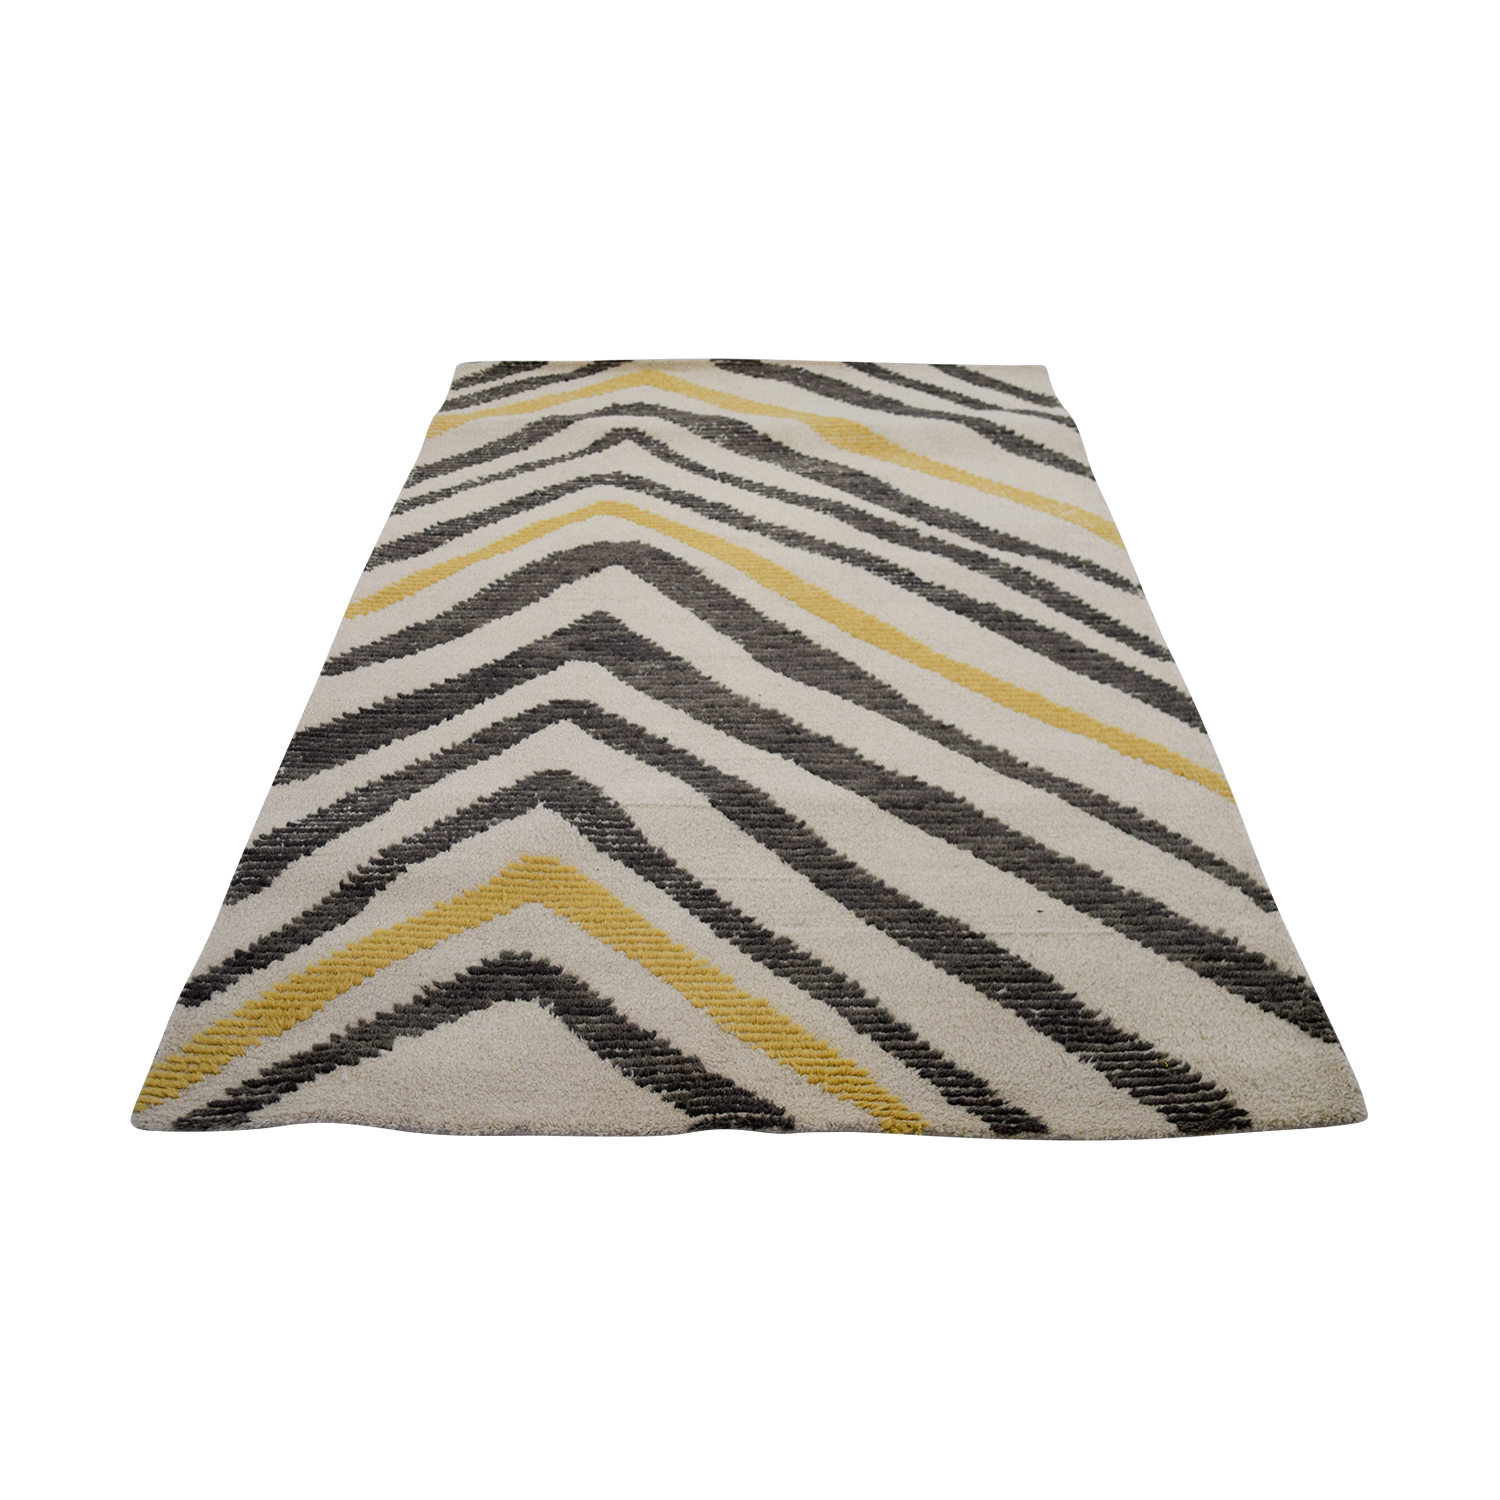 Obeetee Obeetee Motion Grey and Yellow Rug Beige/Brown/Tan